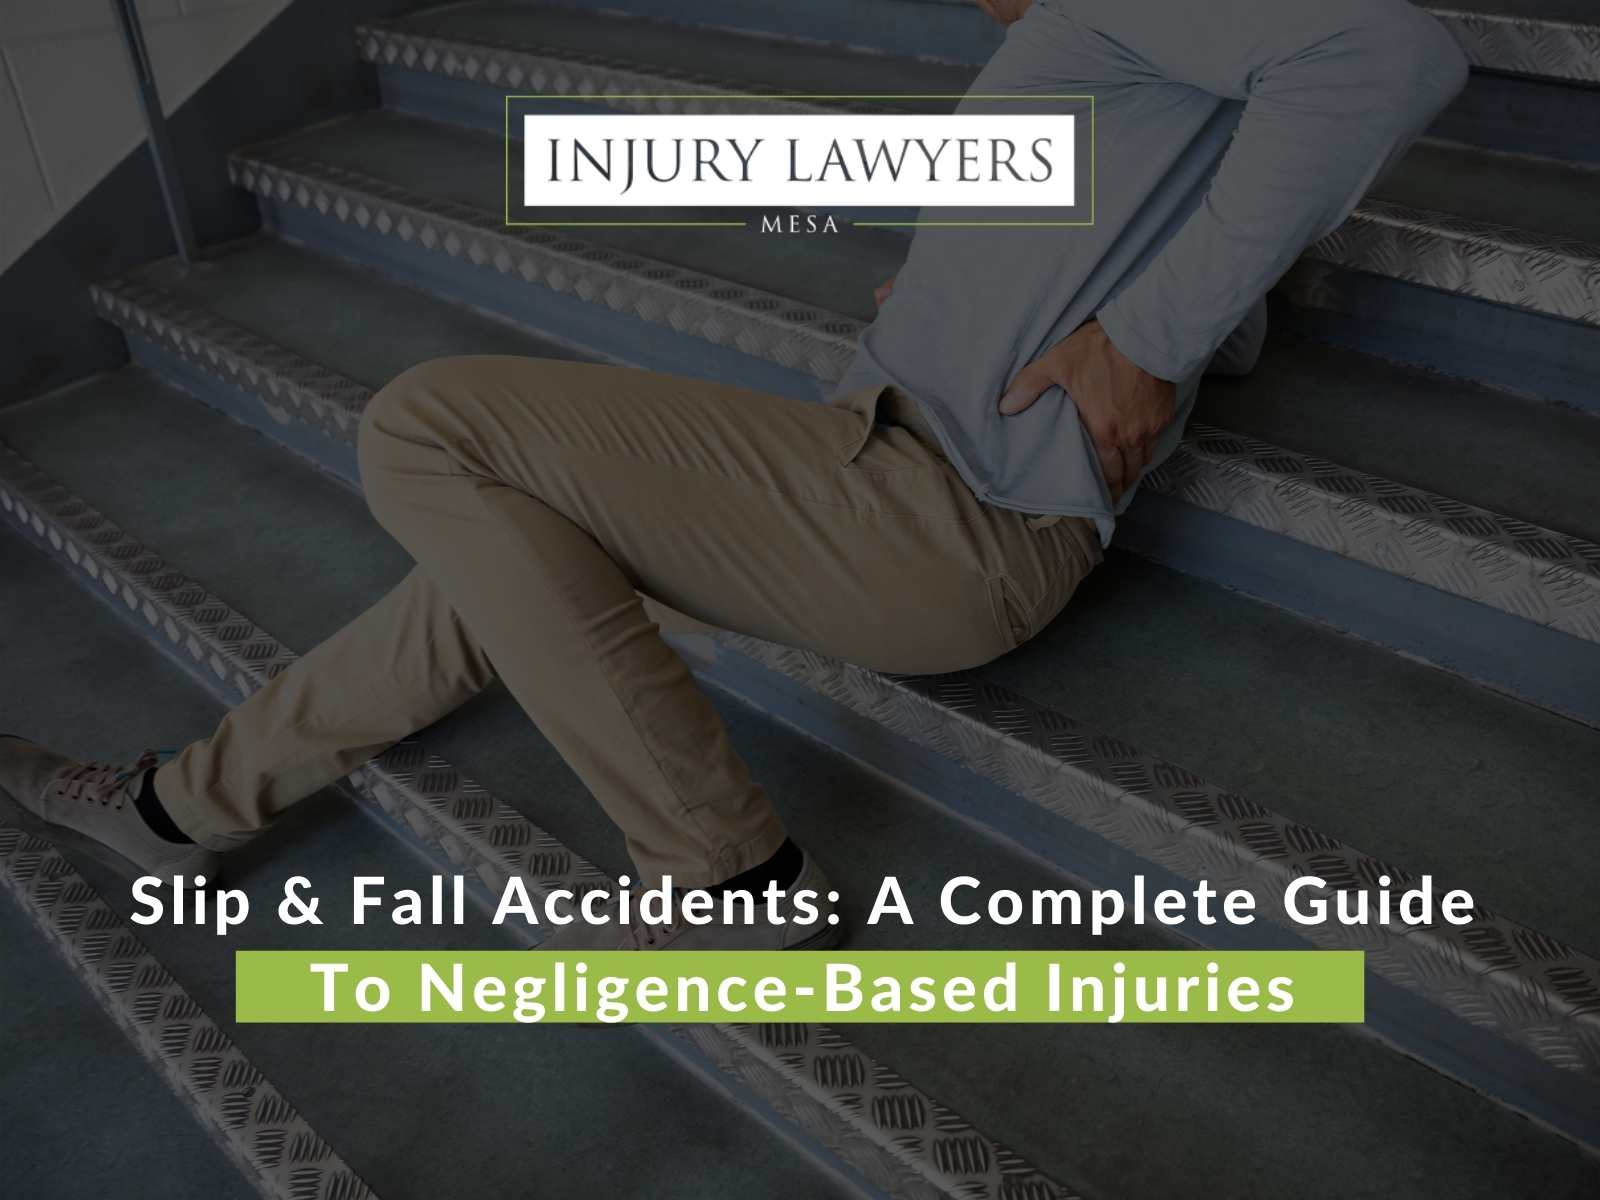 Slip & Fall Accidents: A Complete Guide To Negligence-Based Injuries